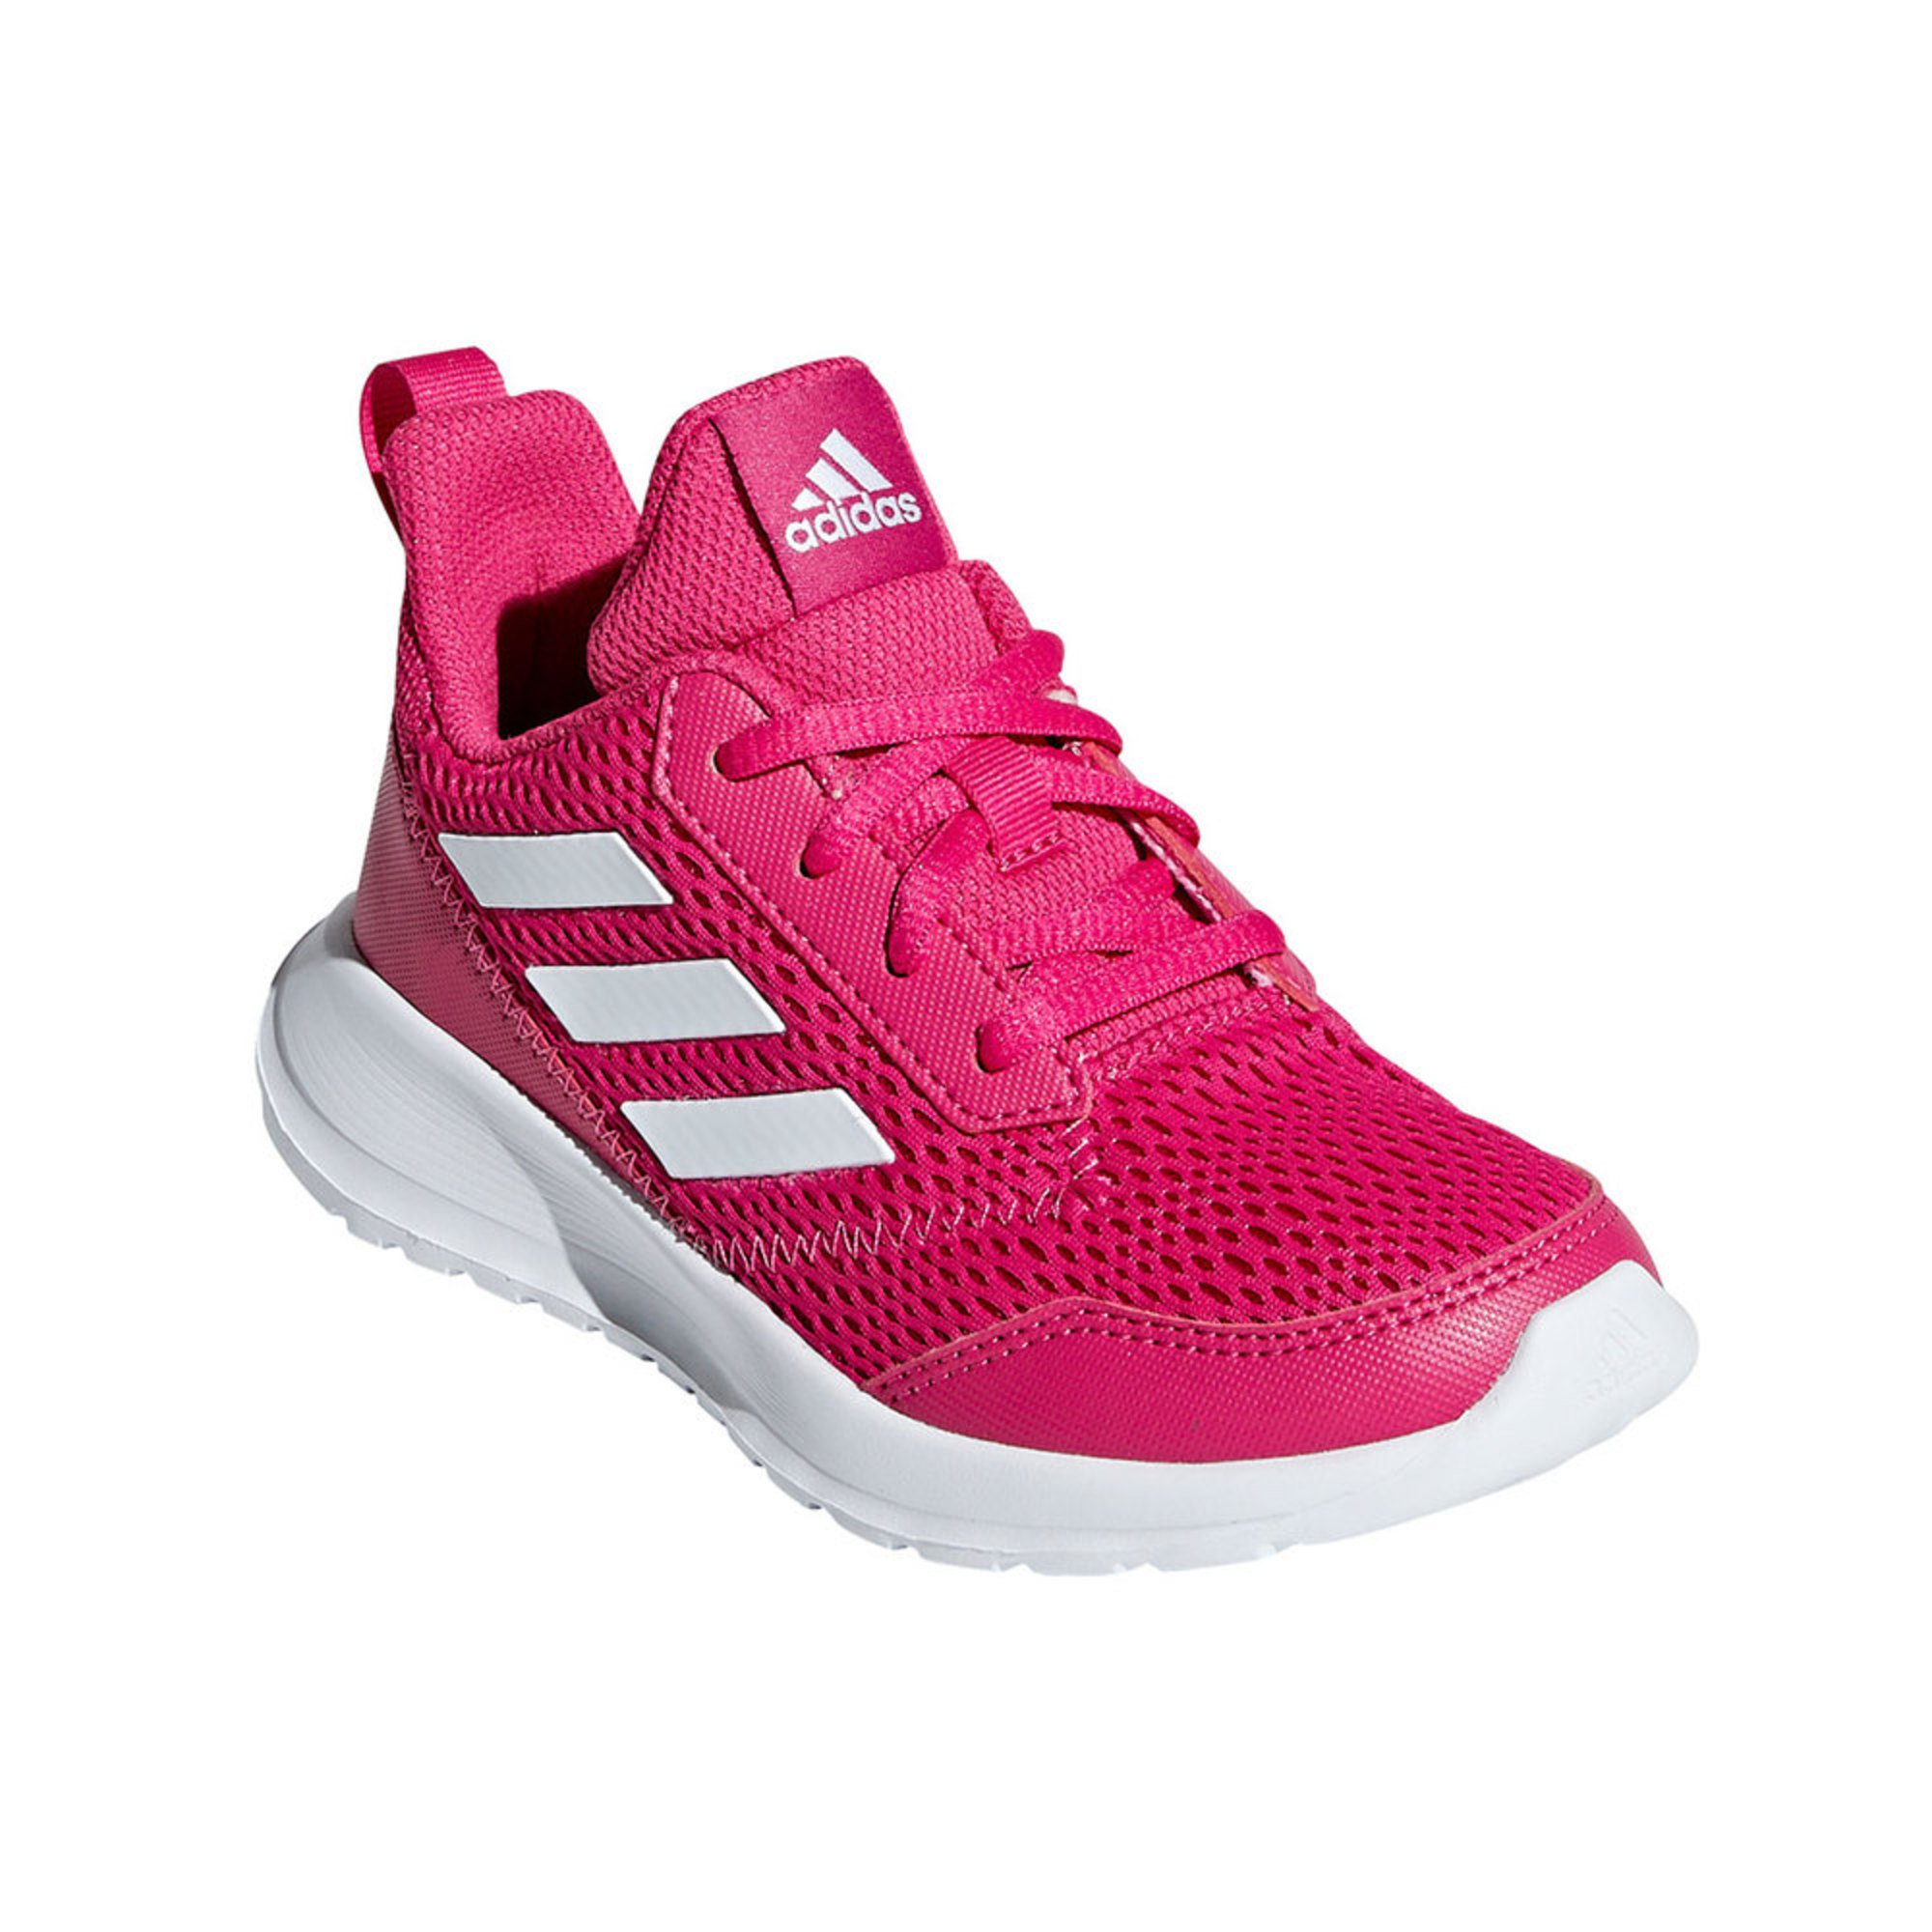 new arrival db974 a4a42 Adidas Girls Altarun K Running Shoe (little Kid)   Little Kid Shoes ...